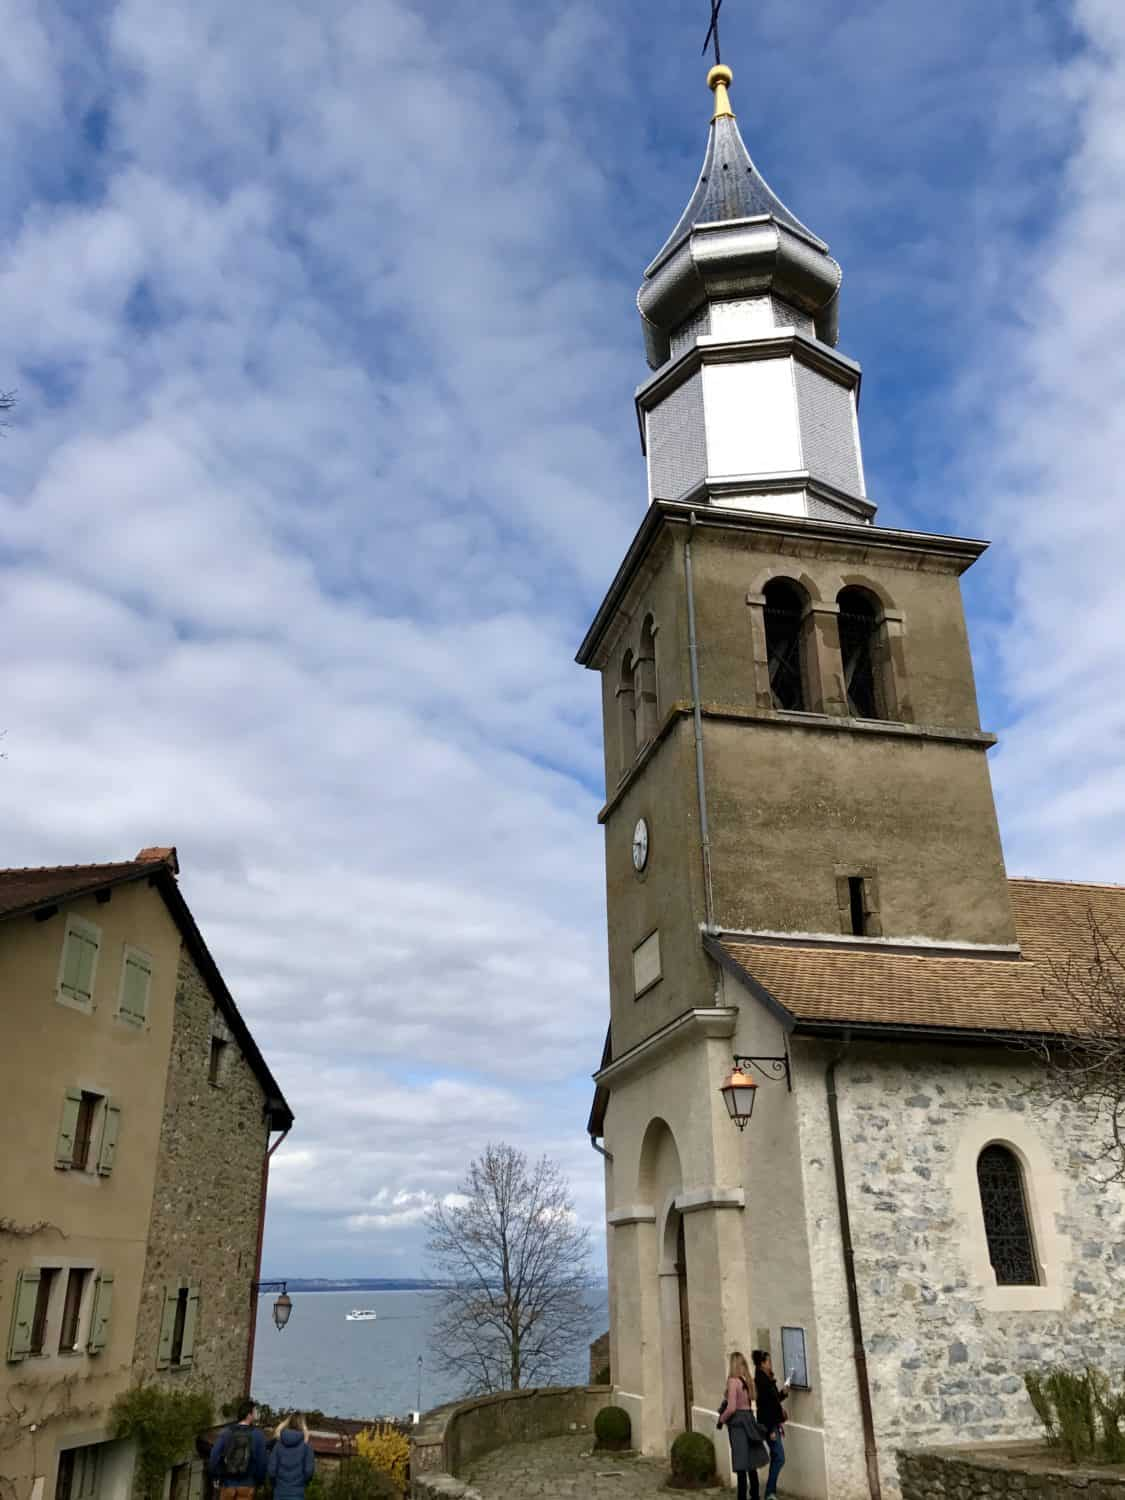 Things to do in Geneva - day trip to Yvoire, France and Chateau Chillon